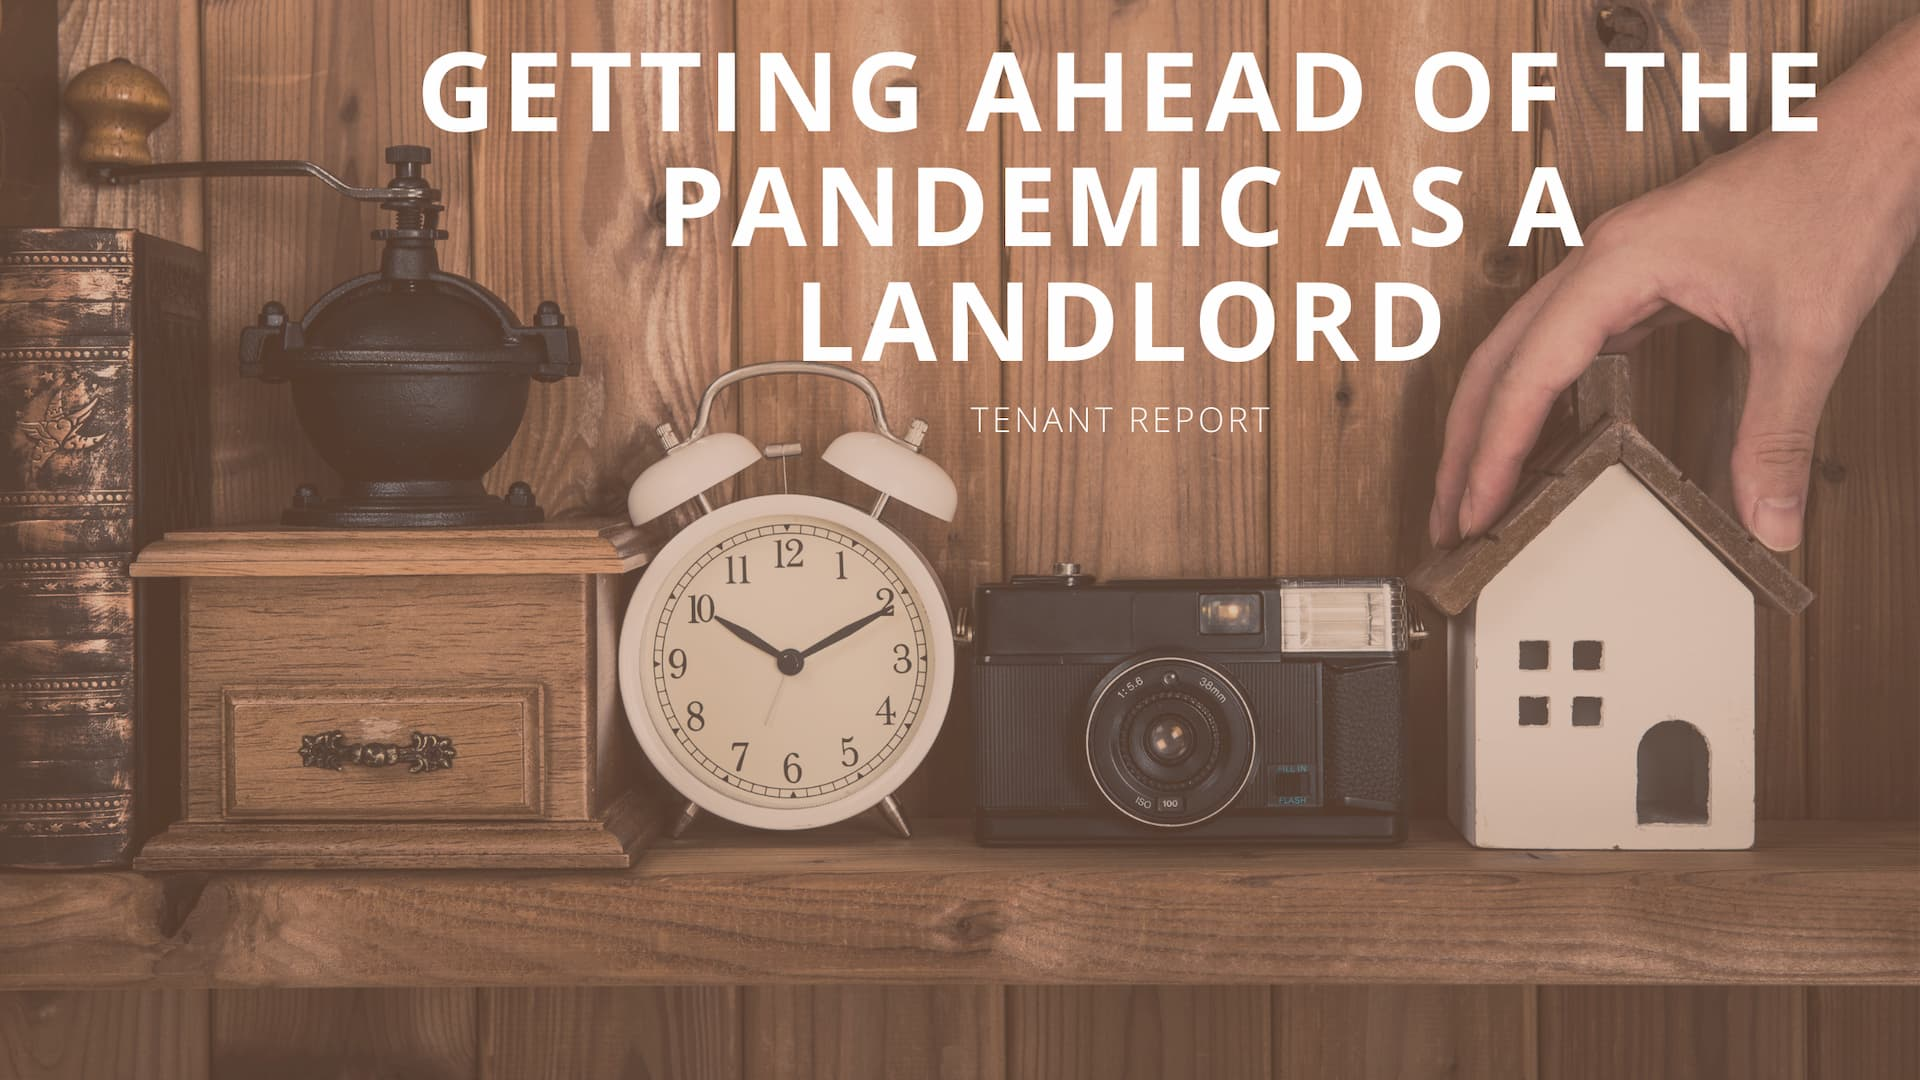 Tenant-Report-Getting-Ahead-of-the-Pandemic-As-a-Landlord-resized